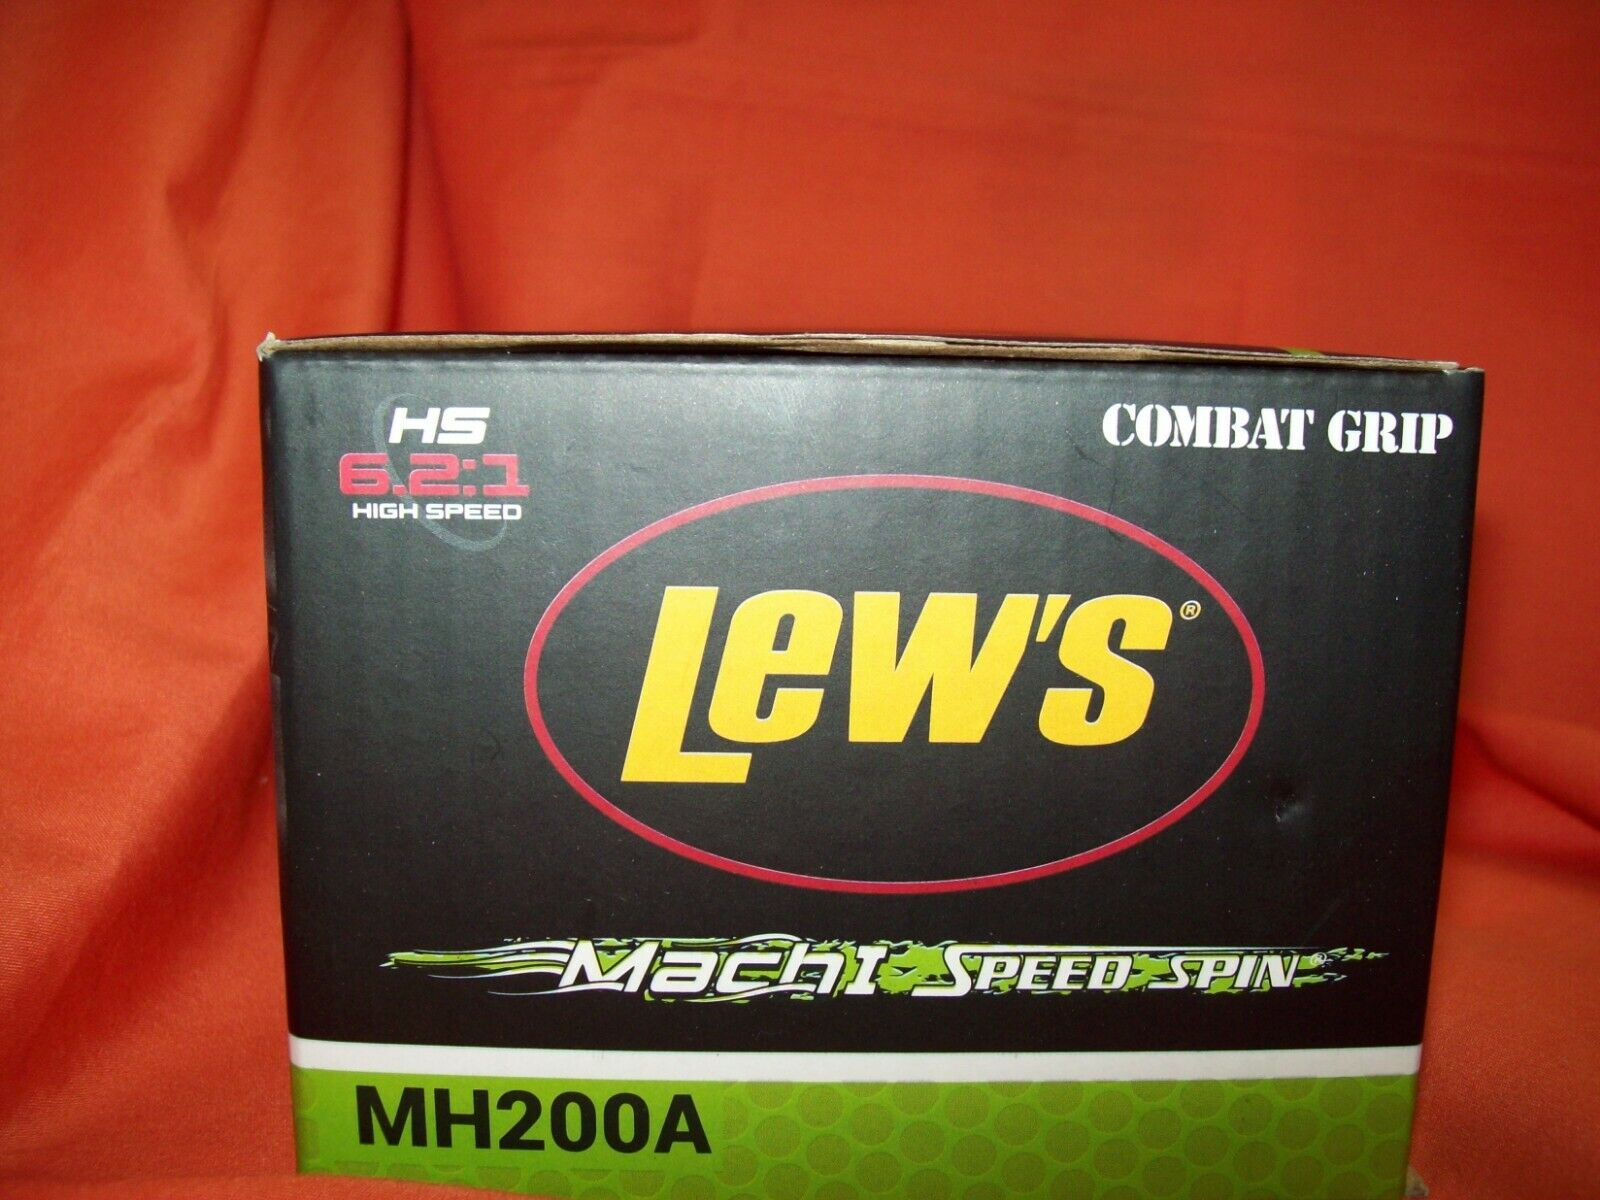 LEW'S Mach I Speed Spin Series Spinning Reel Gear Ratio 6.2 1  MH200A